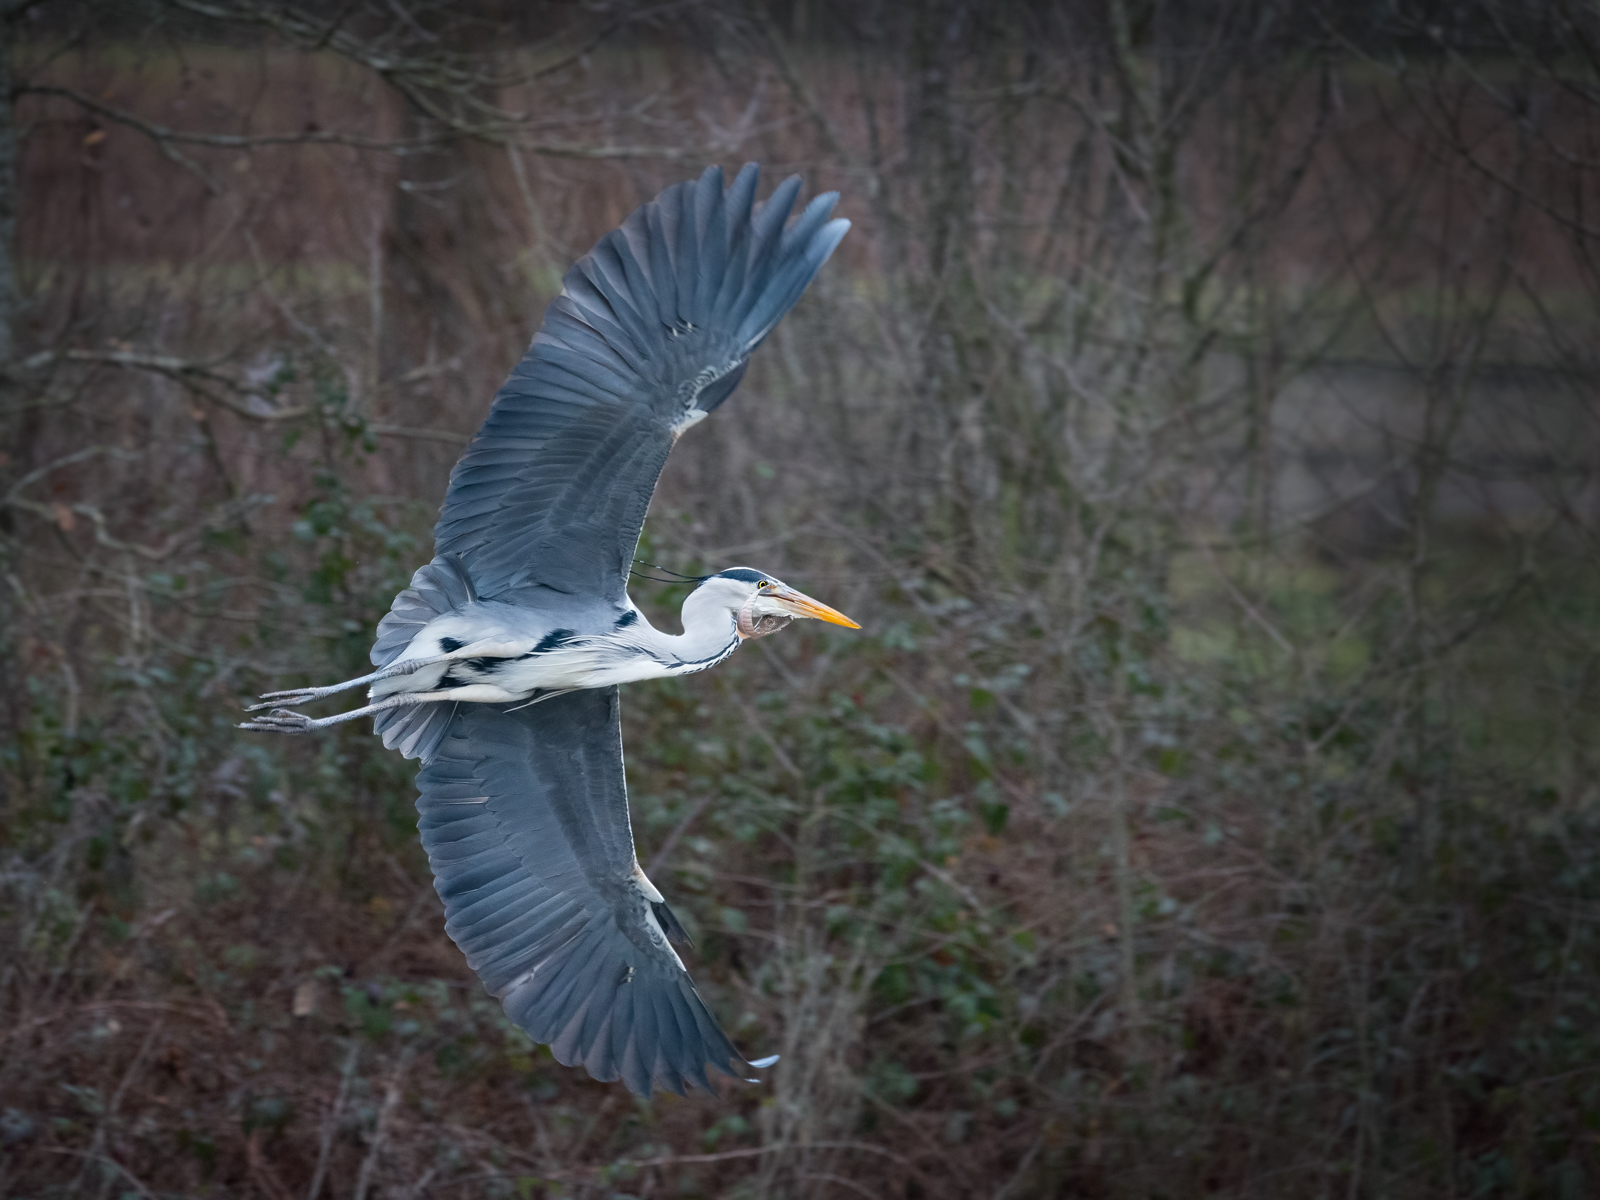 Heron flight with Catch